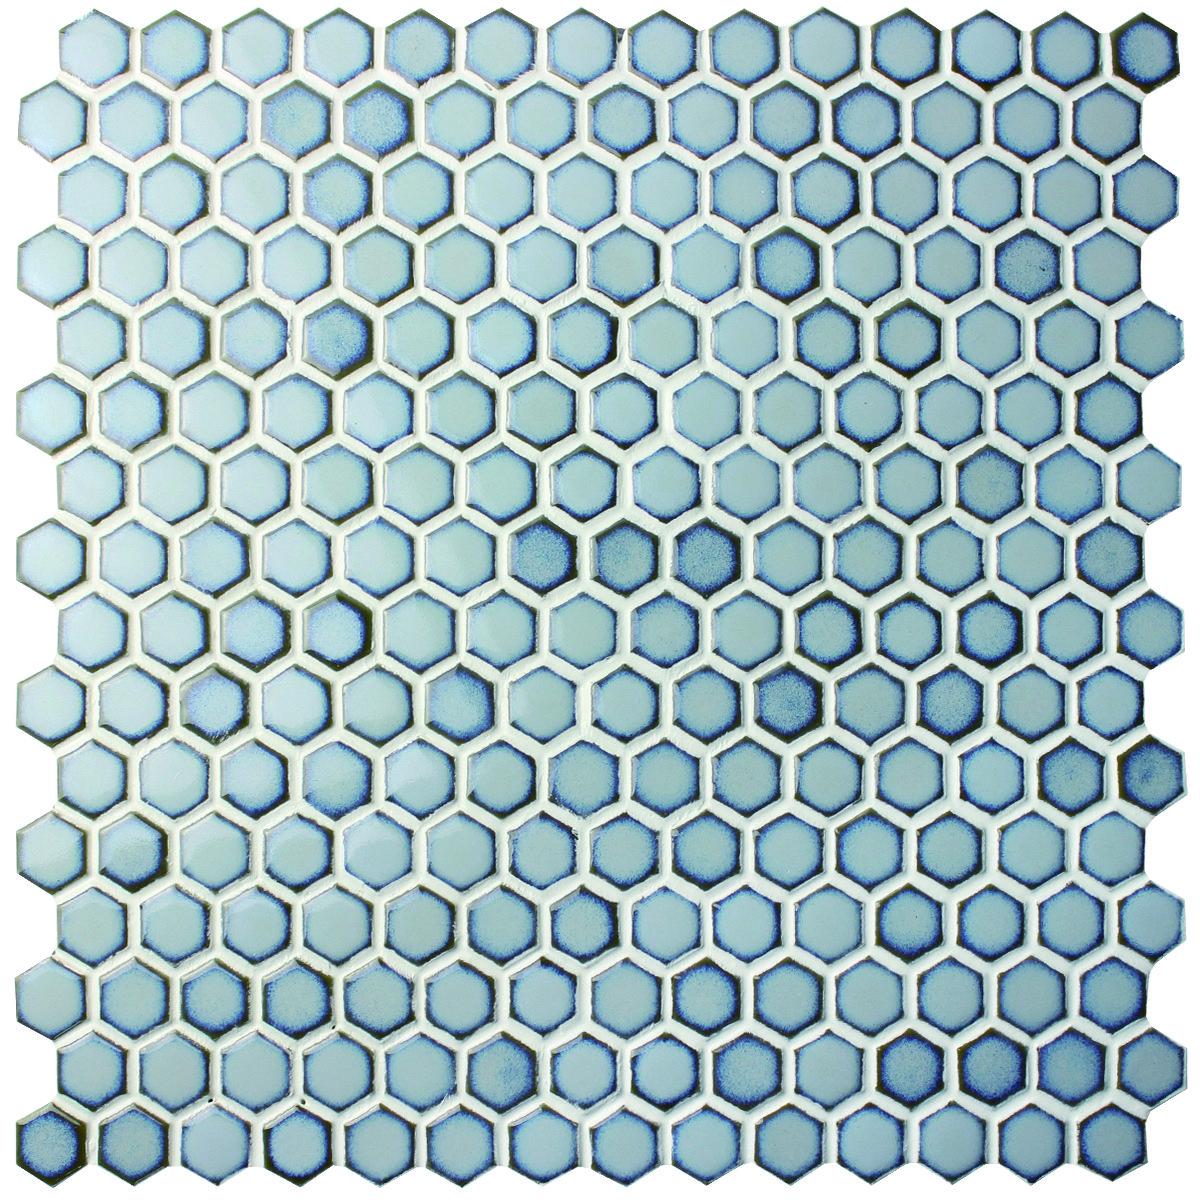 Hexagon Ceramic Mosaic Tiles At Bluwhaletile Available In Wide